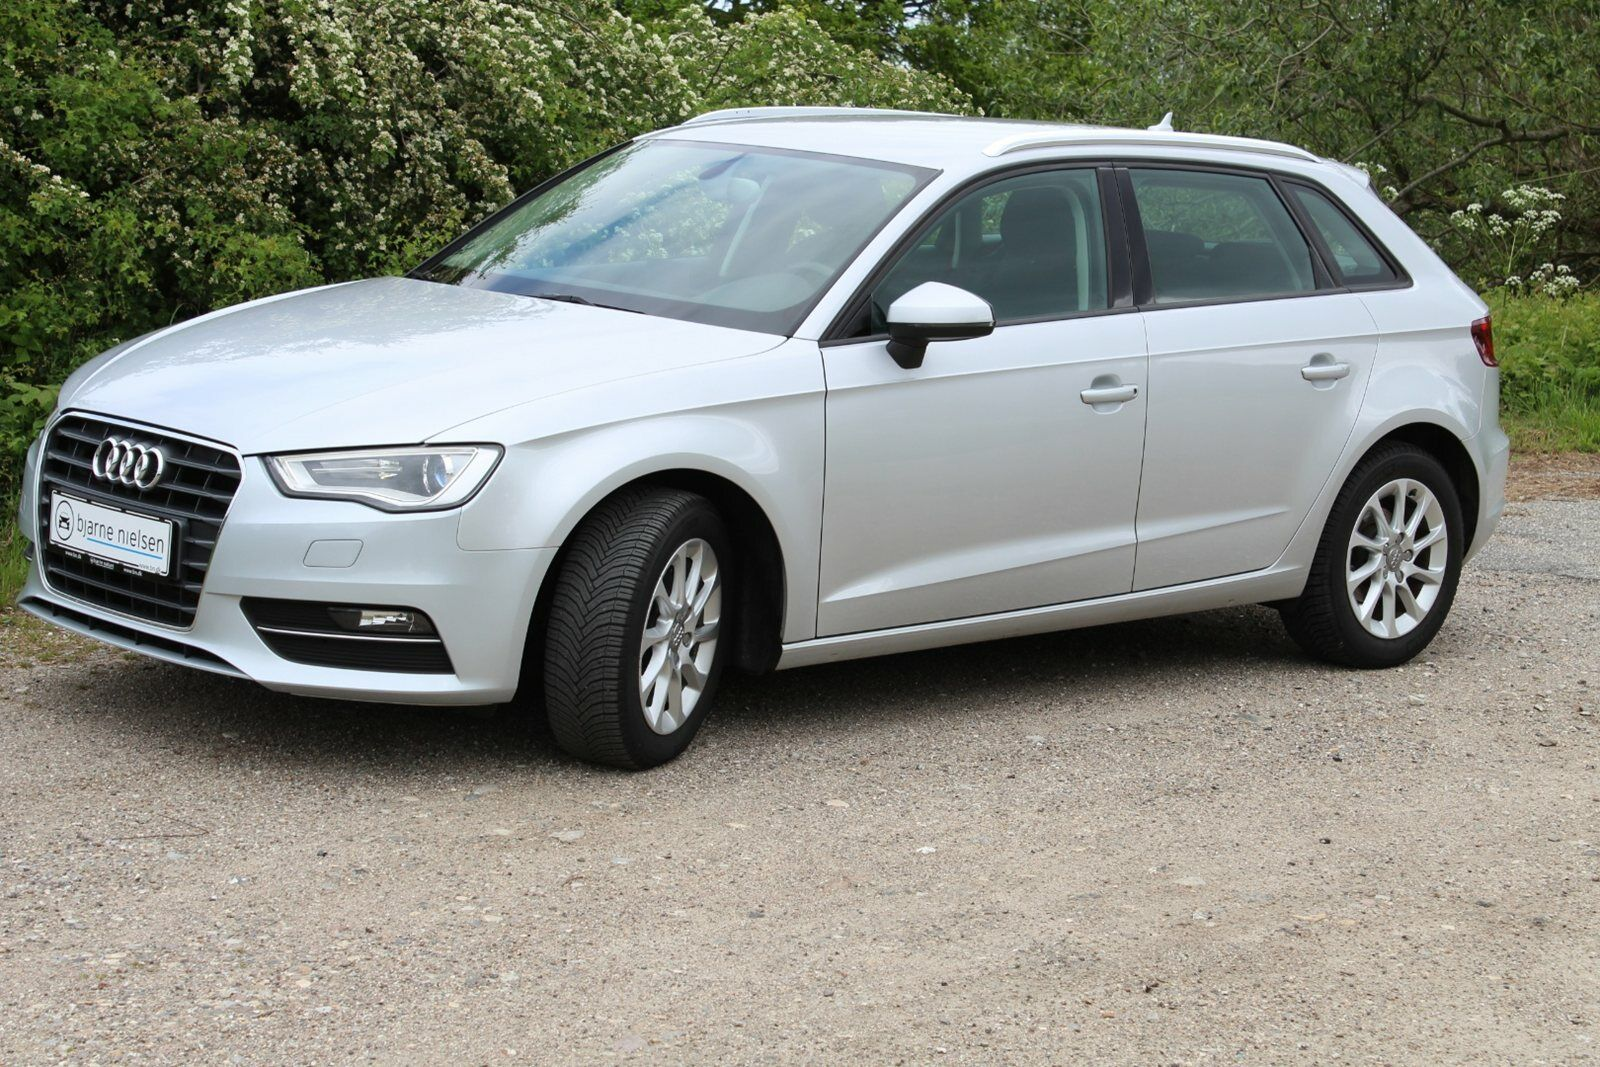 Audi A3 1,4 TFSi 122 Attraction SB